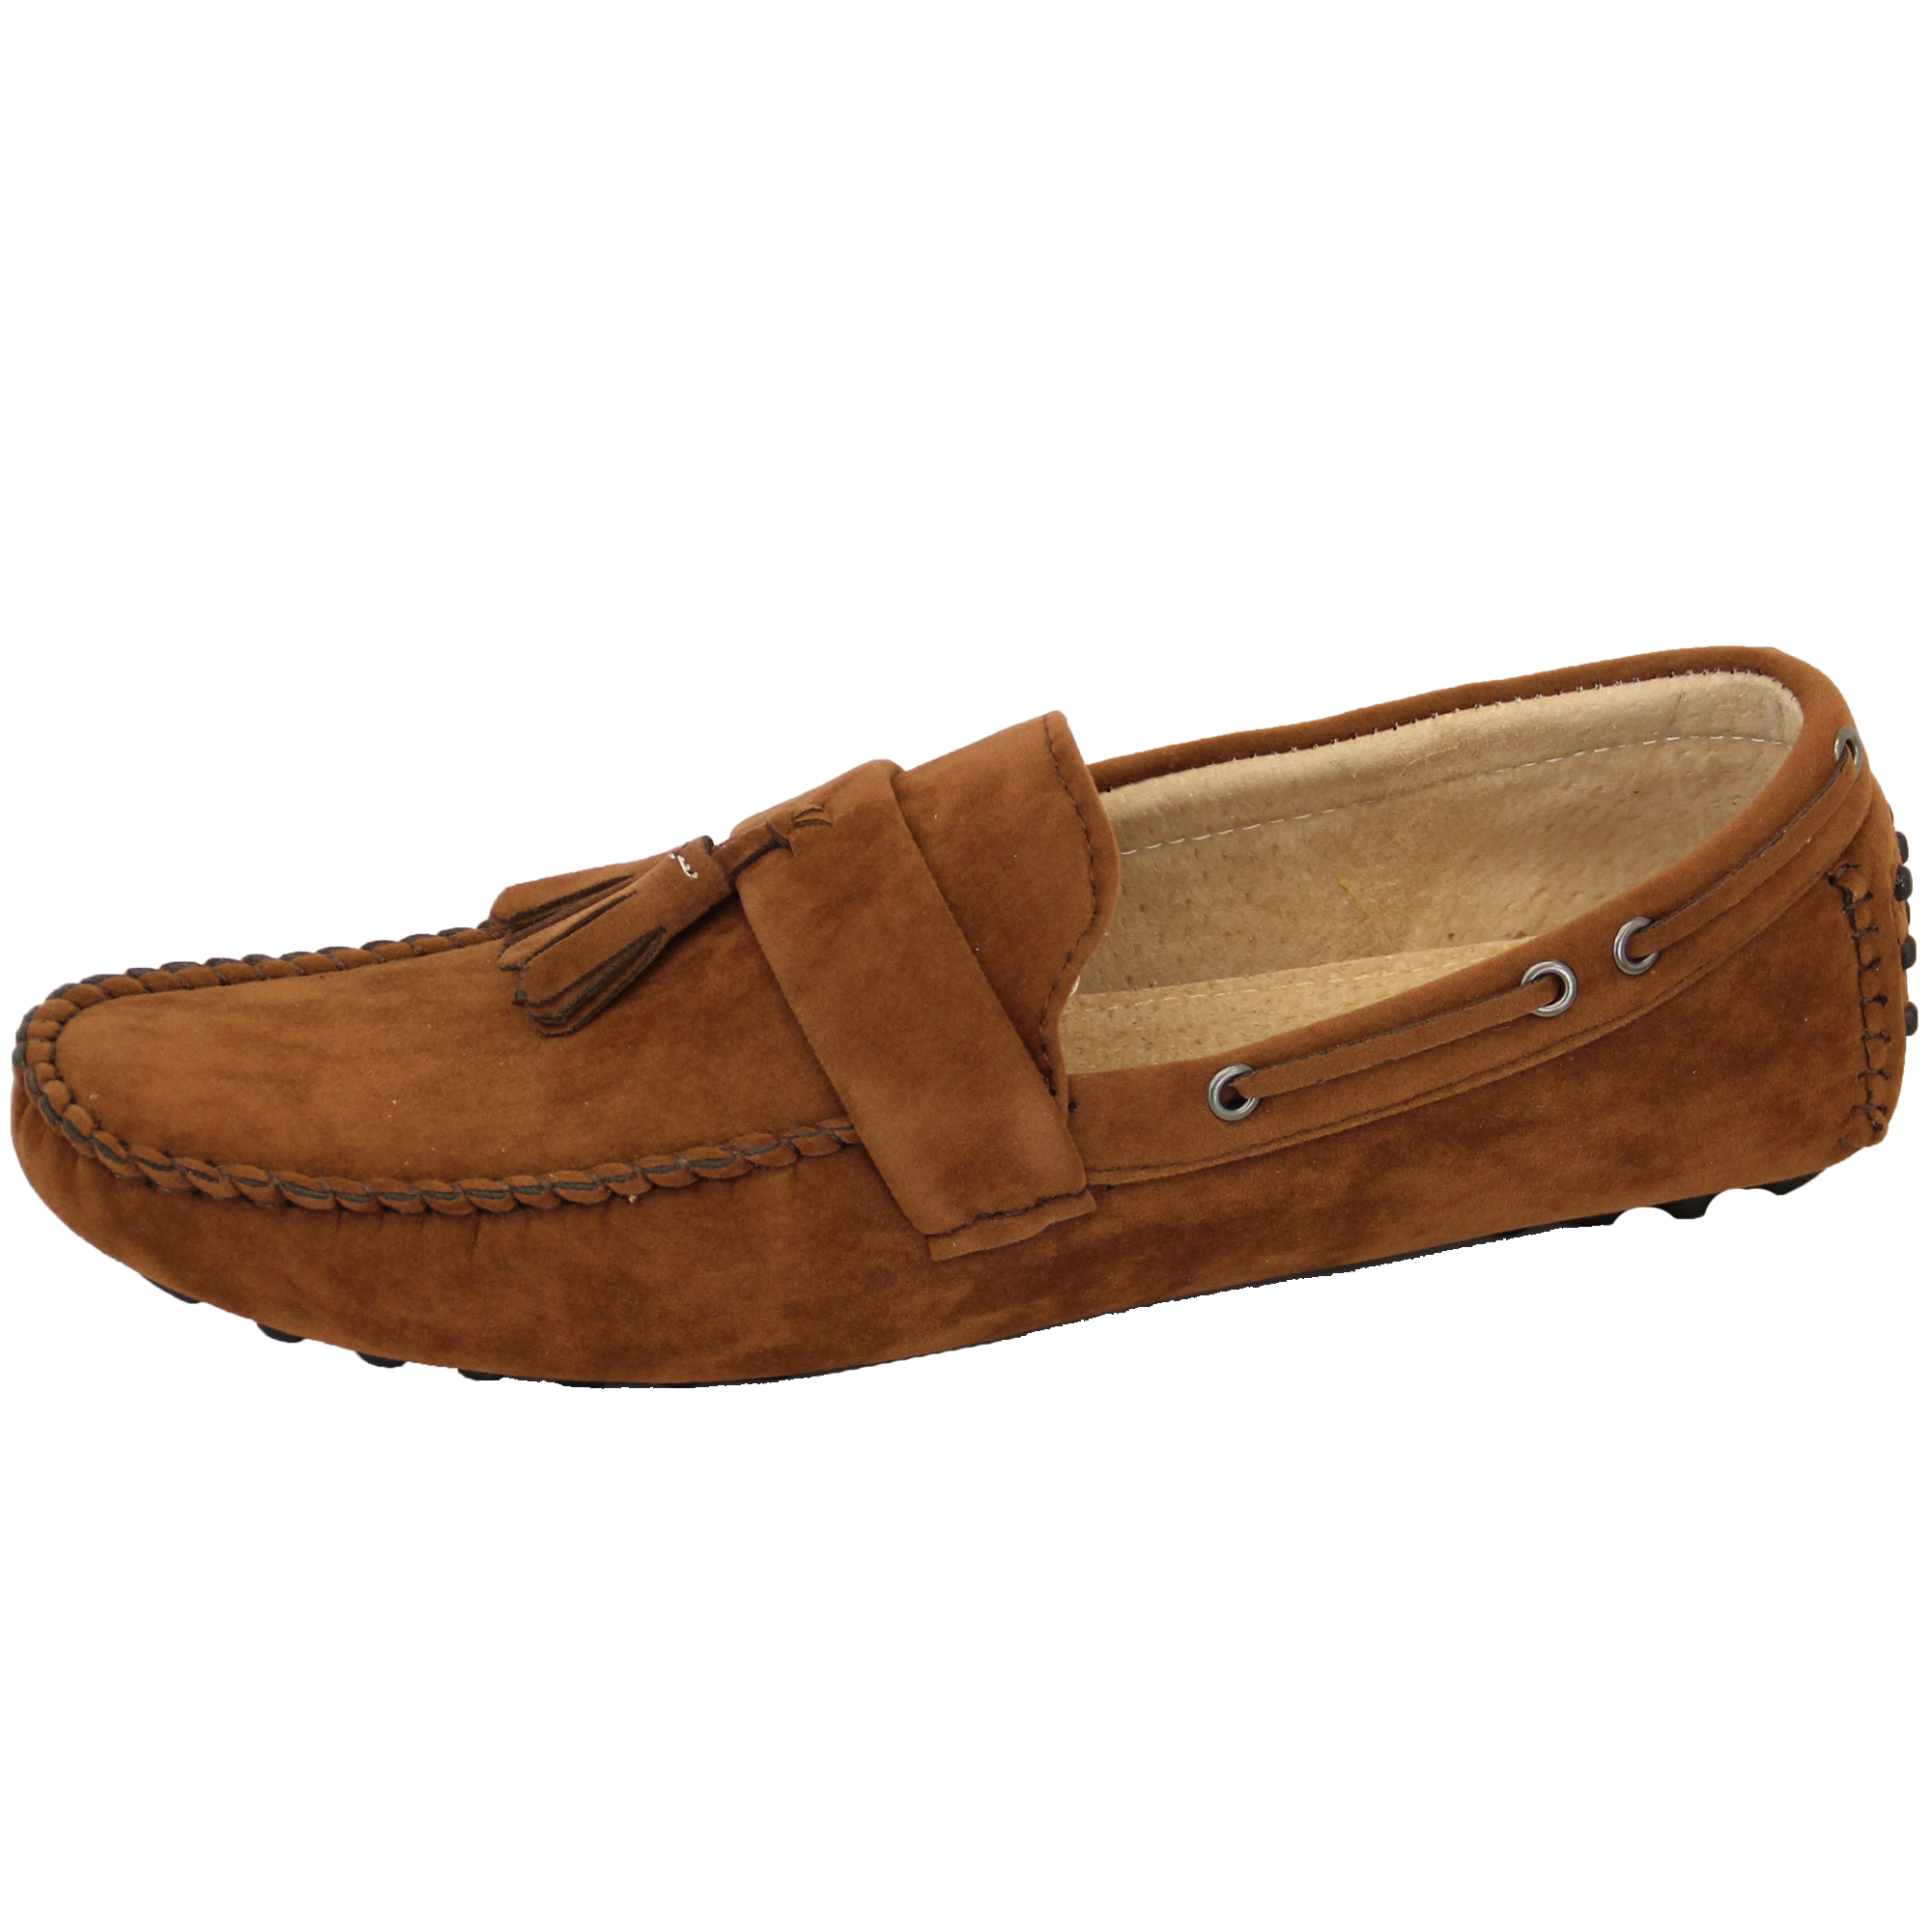 mens moccasins suede leather look shoes boat slip on